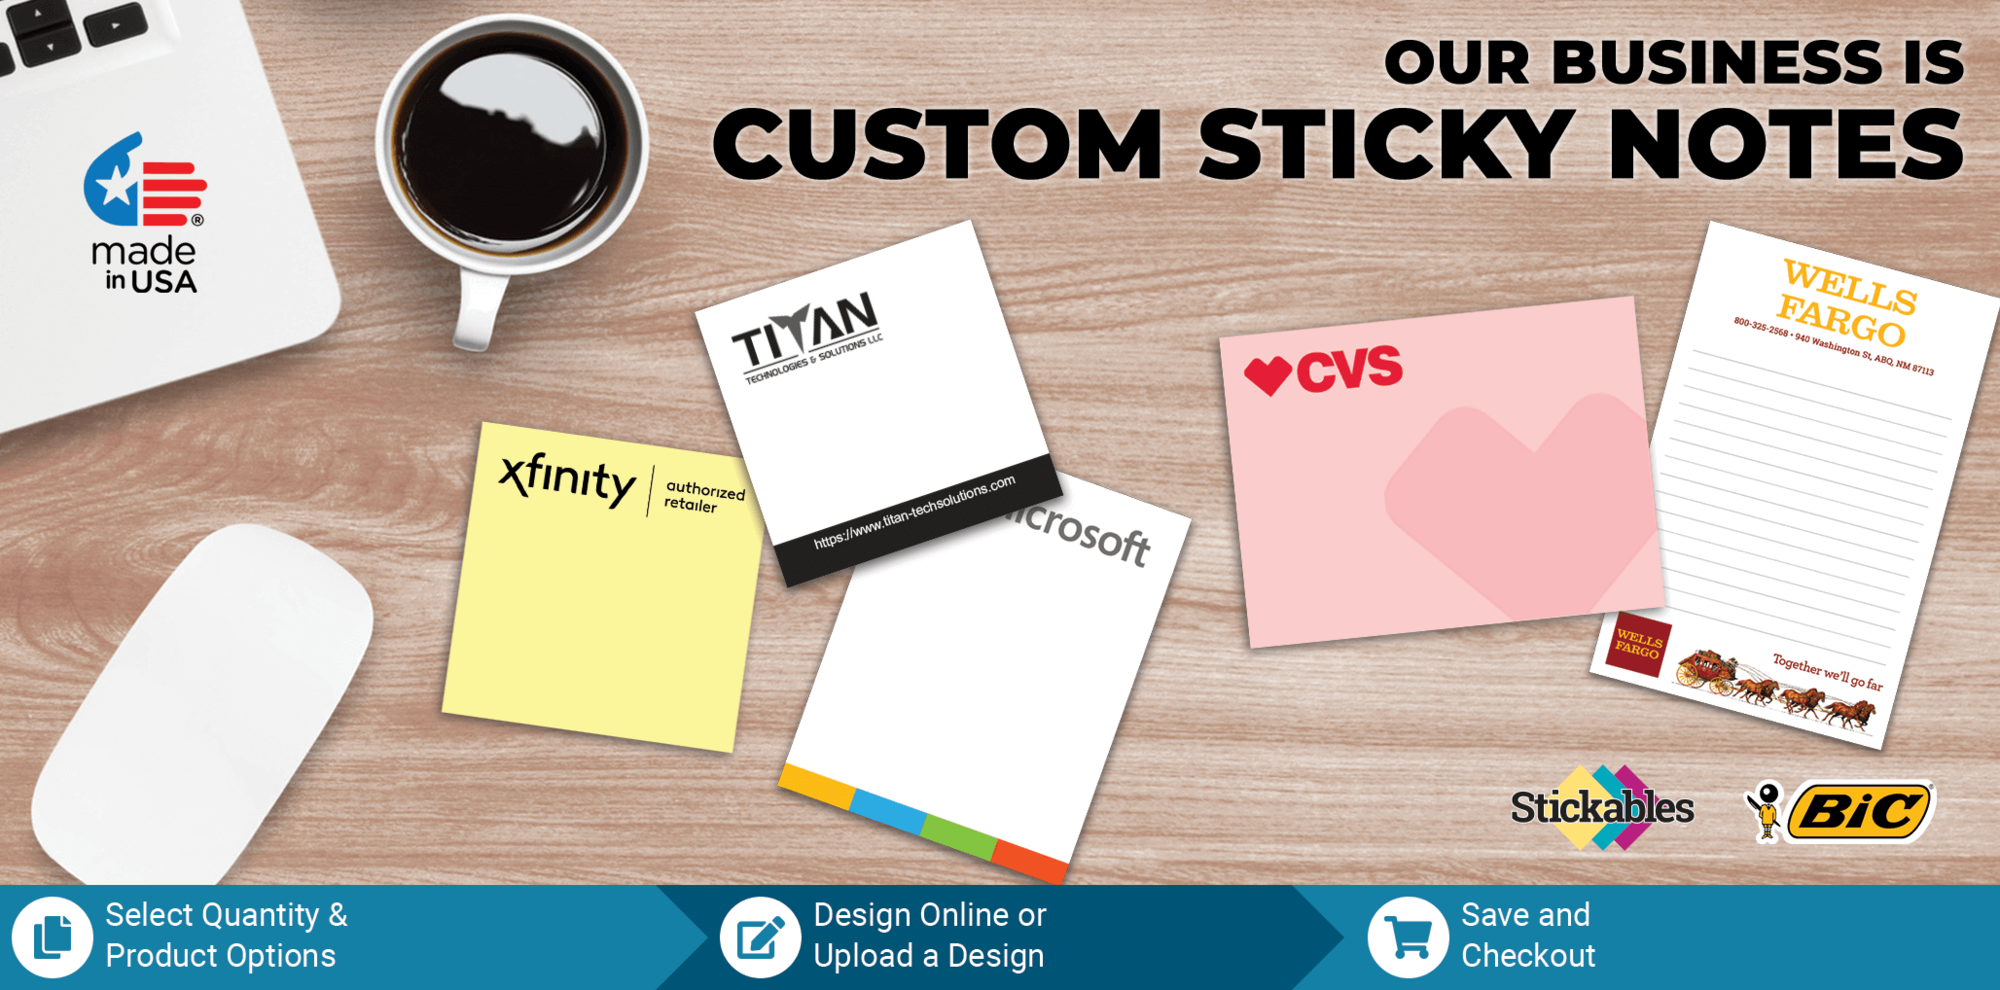 https://printpps.com/images/products_gallery_images/Custom-Sticky-Notes_Product-Page-Banner26.png